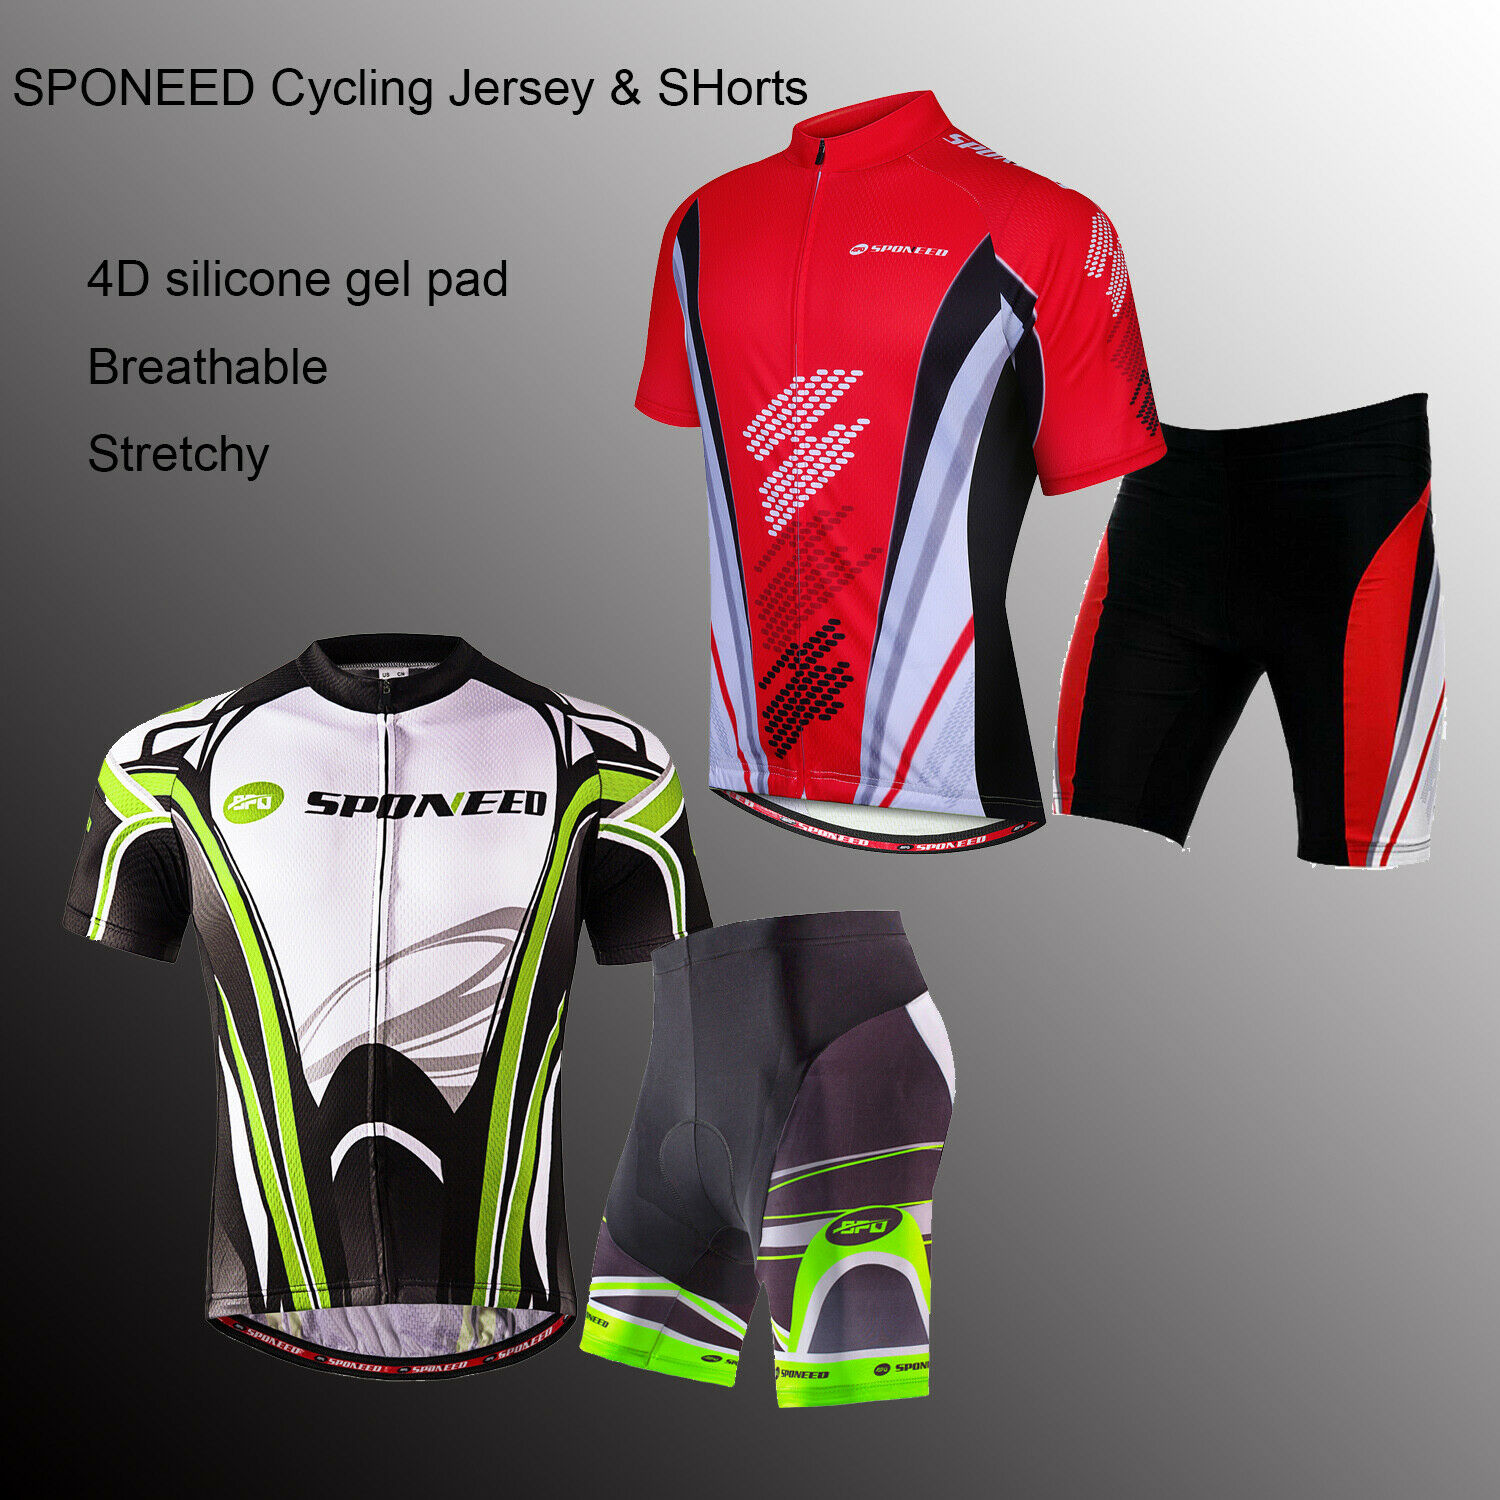 Men Bike Uniforms Team Cycling Jersey & Shorts Kits Pro Mtn Road Cycle Outfits